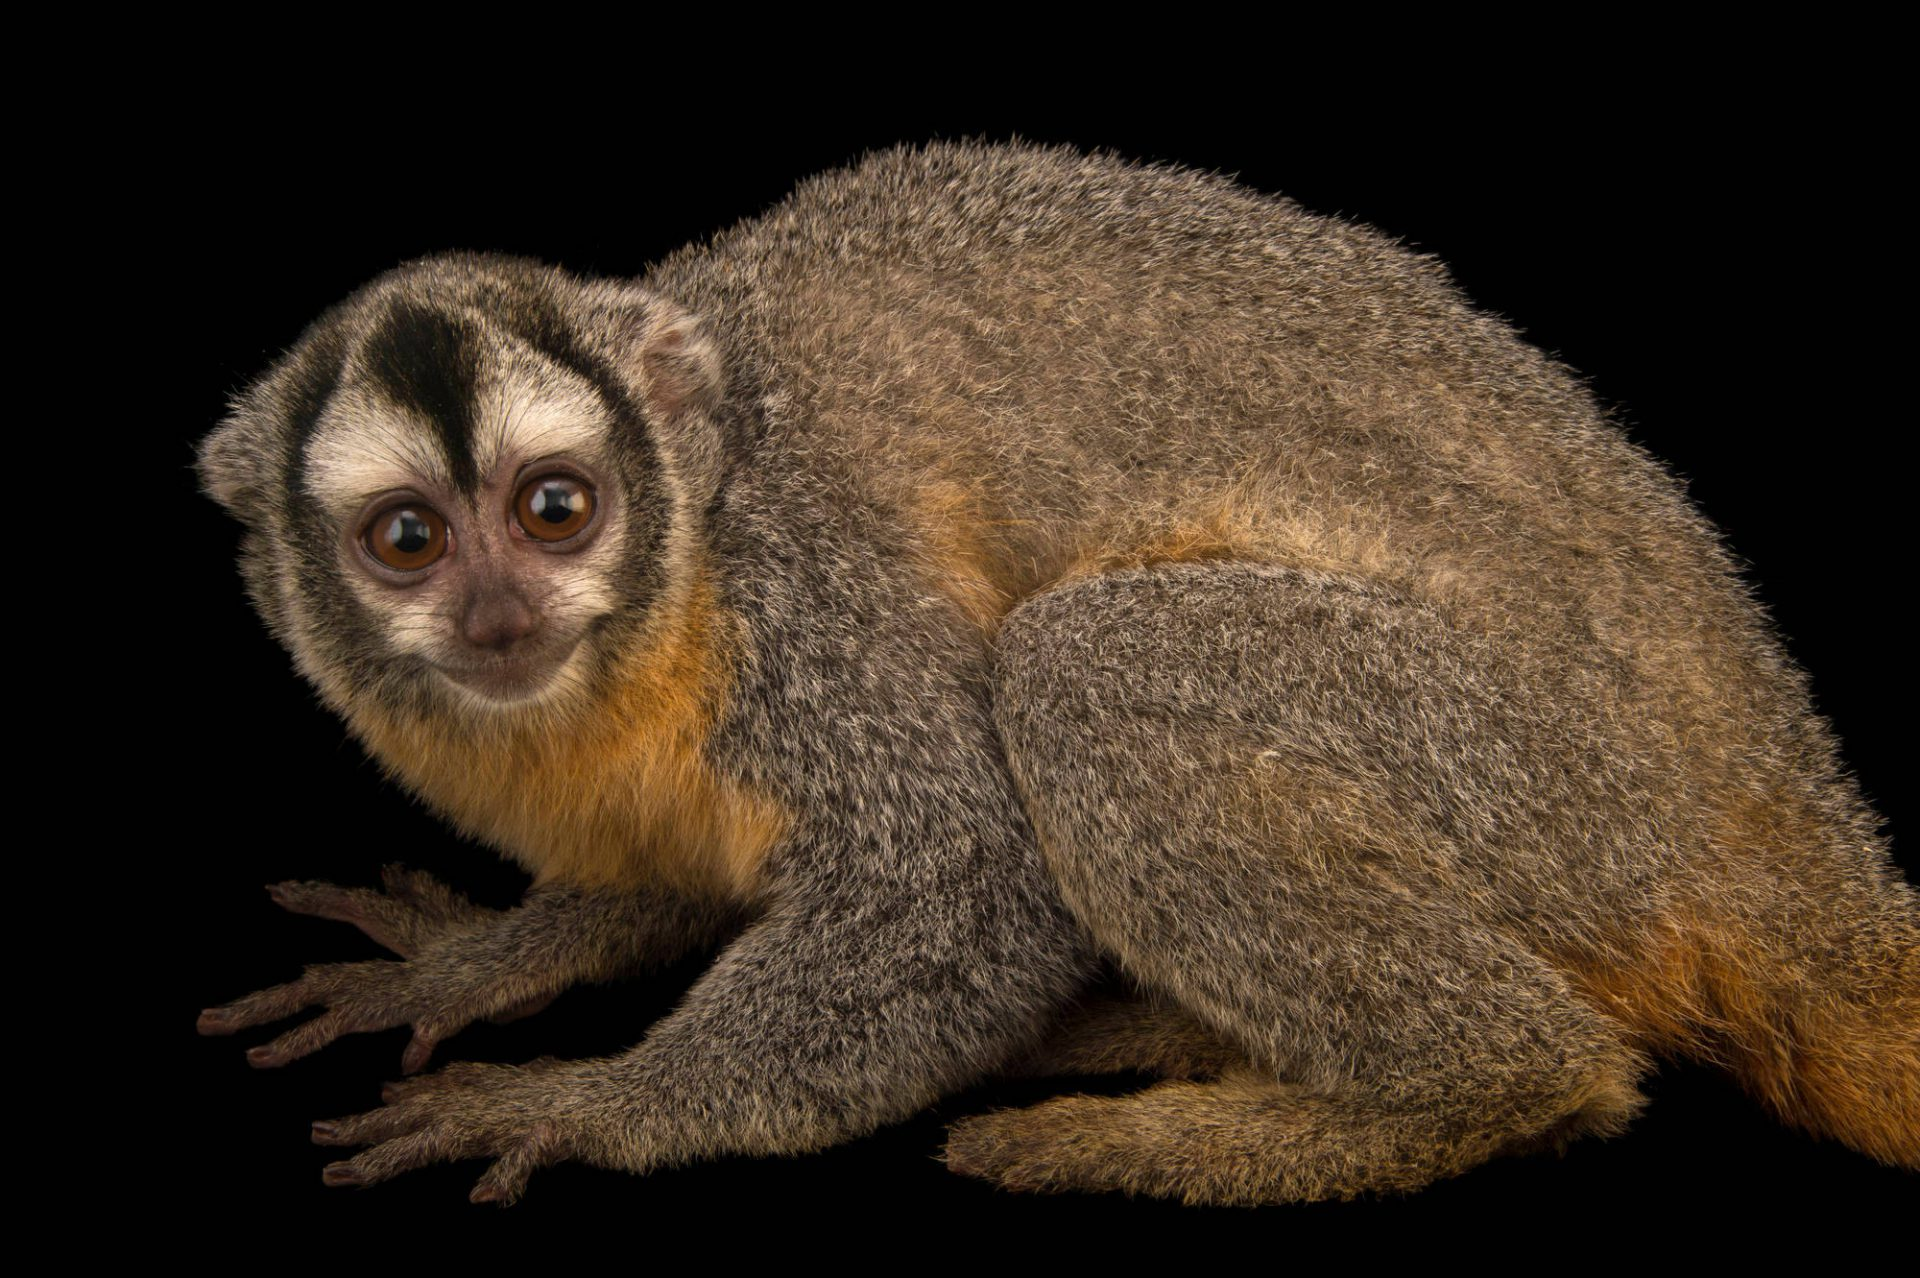 Photo: A Bolivian night monkey (Aotus azarae boliviensis) at the Plzen Zoo in the Czech Republic.